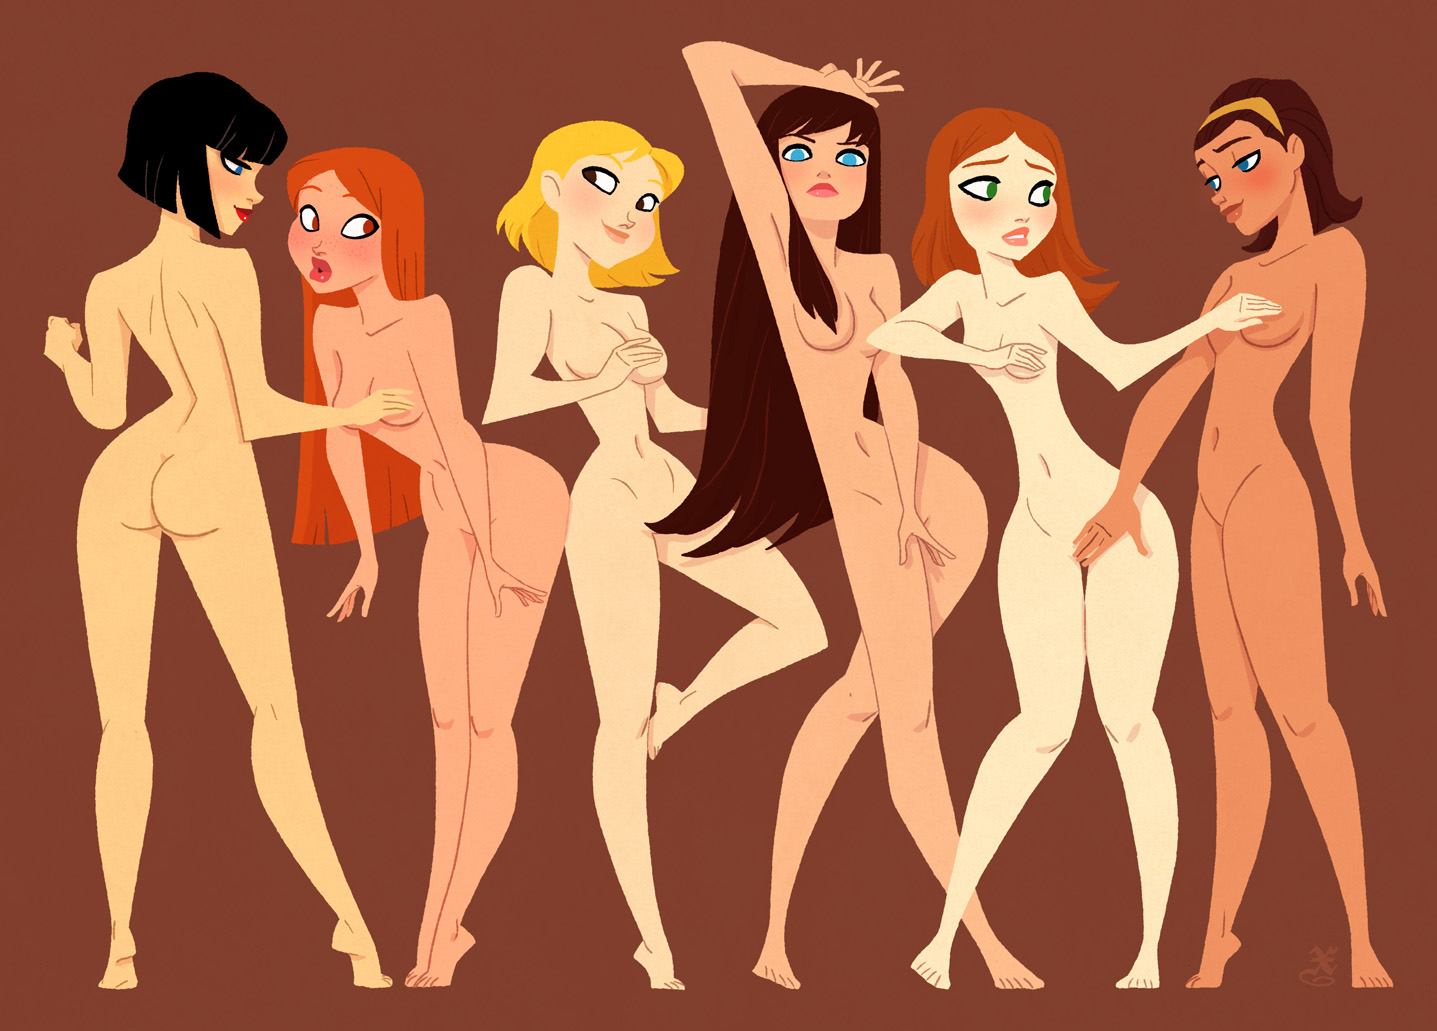 Cartoon woman nude image porn galleries